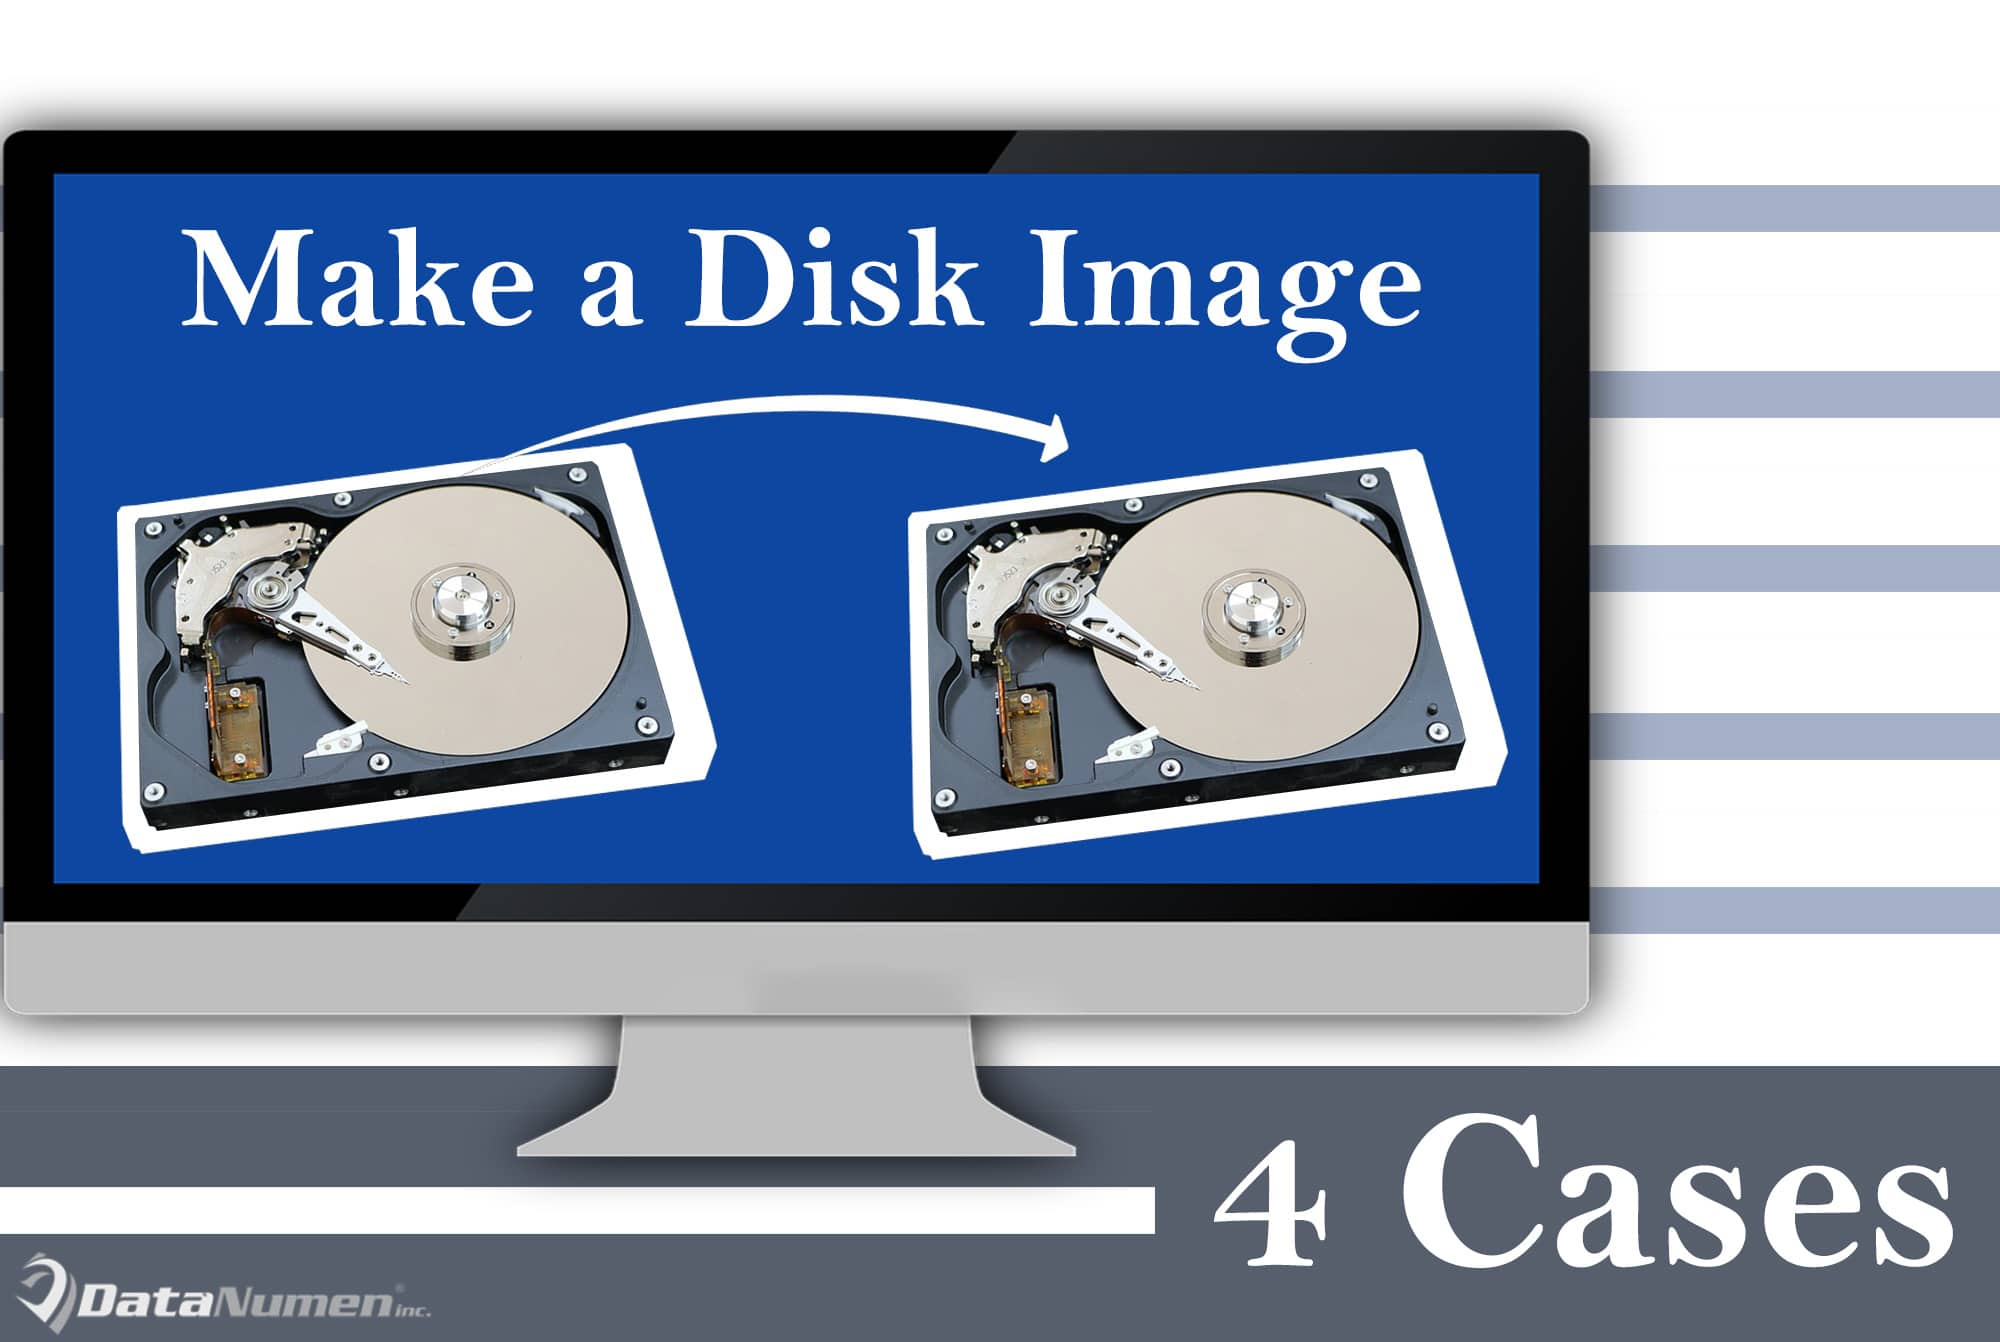 4 Top Cases when You Should Make an Image of Your Hard Drive